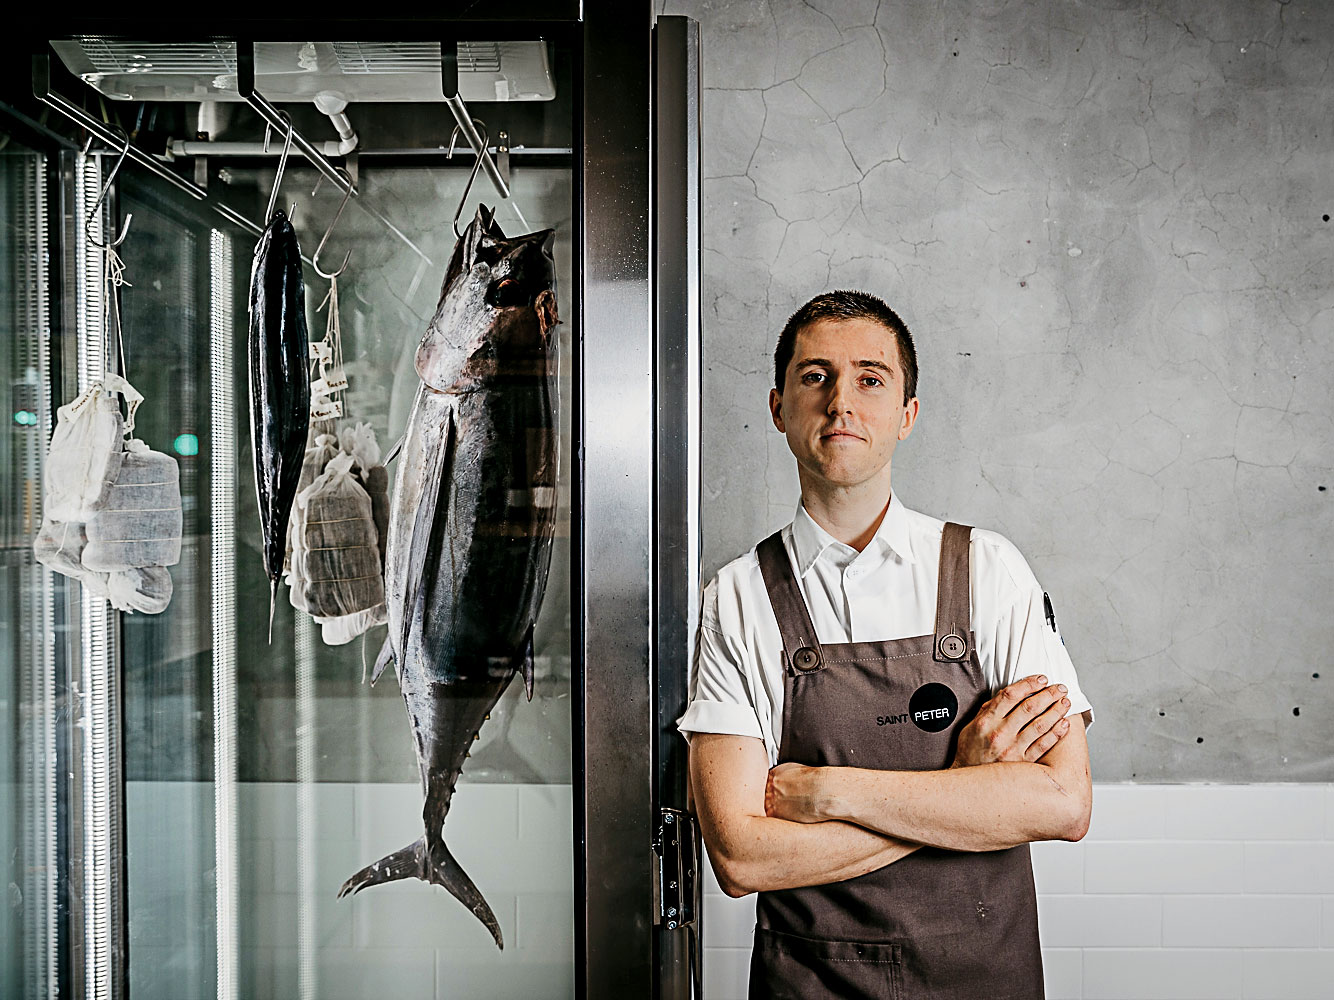 This Aussie Fish Butcher Is the World's Most Creative—and Controversial—Seafood Chef